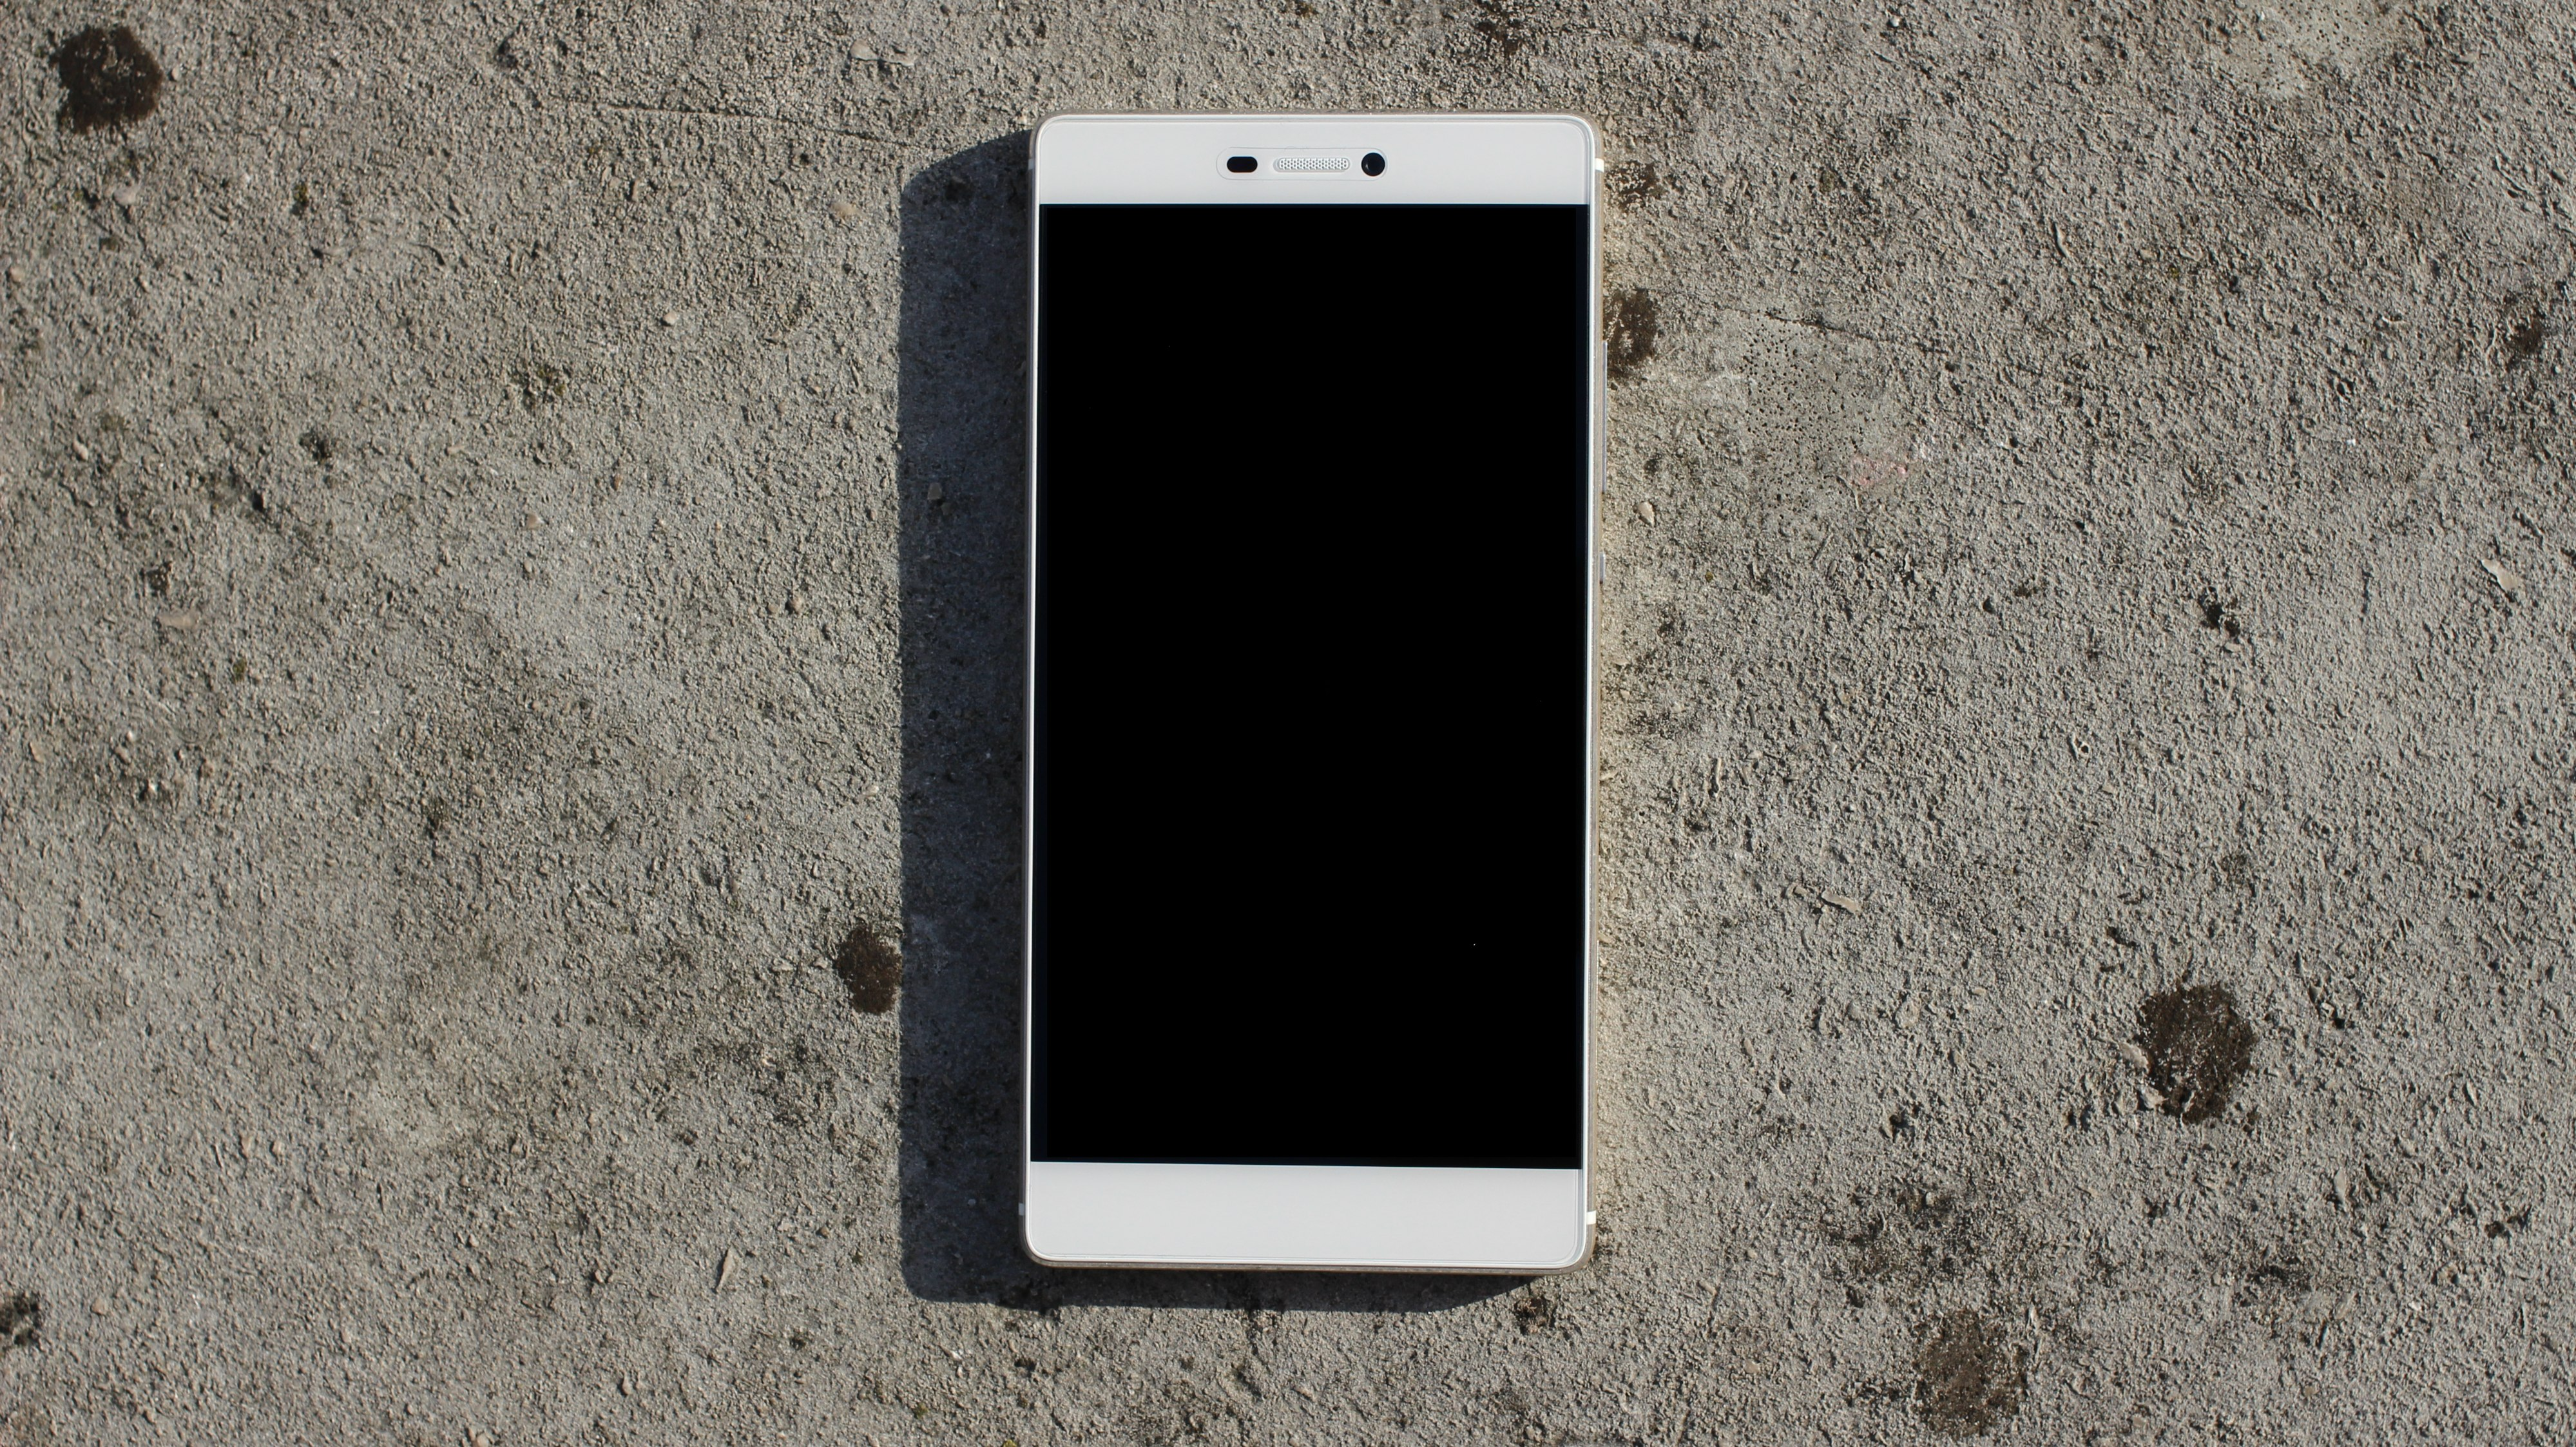 Huawei P8 - The complete information and online sale with